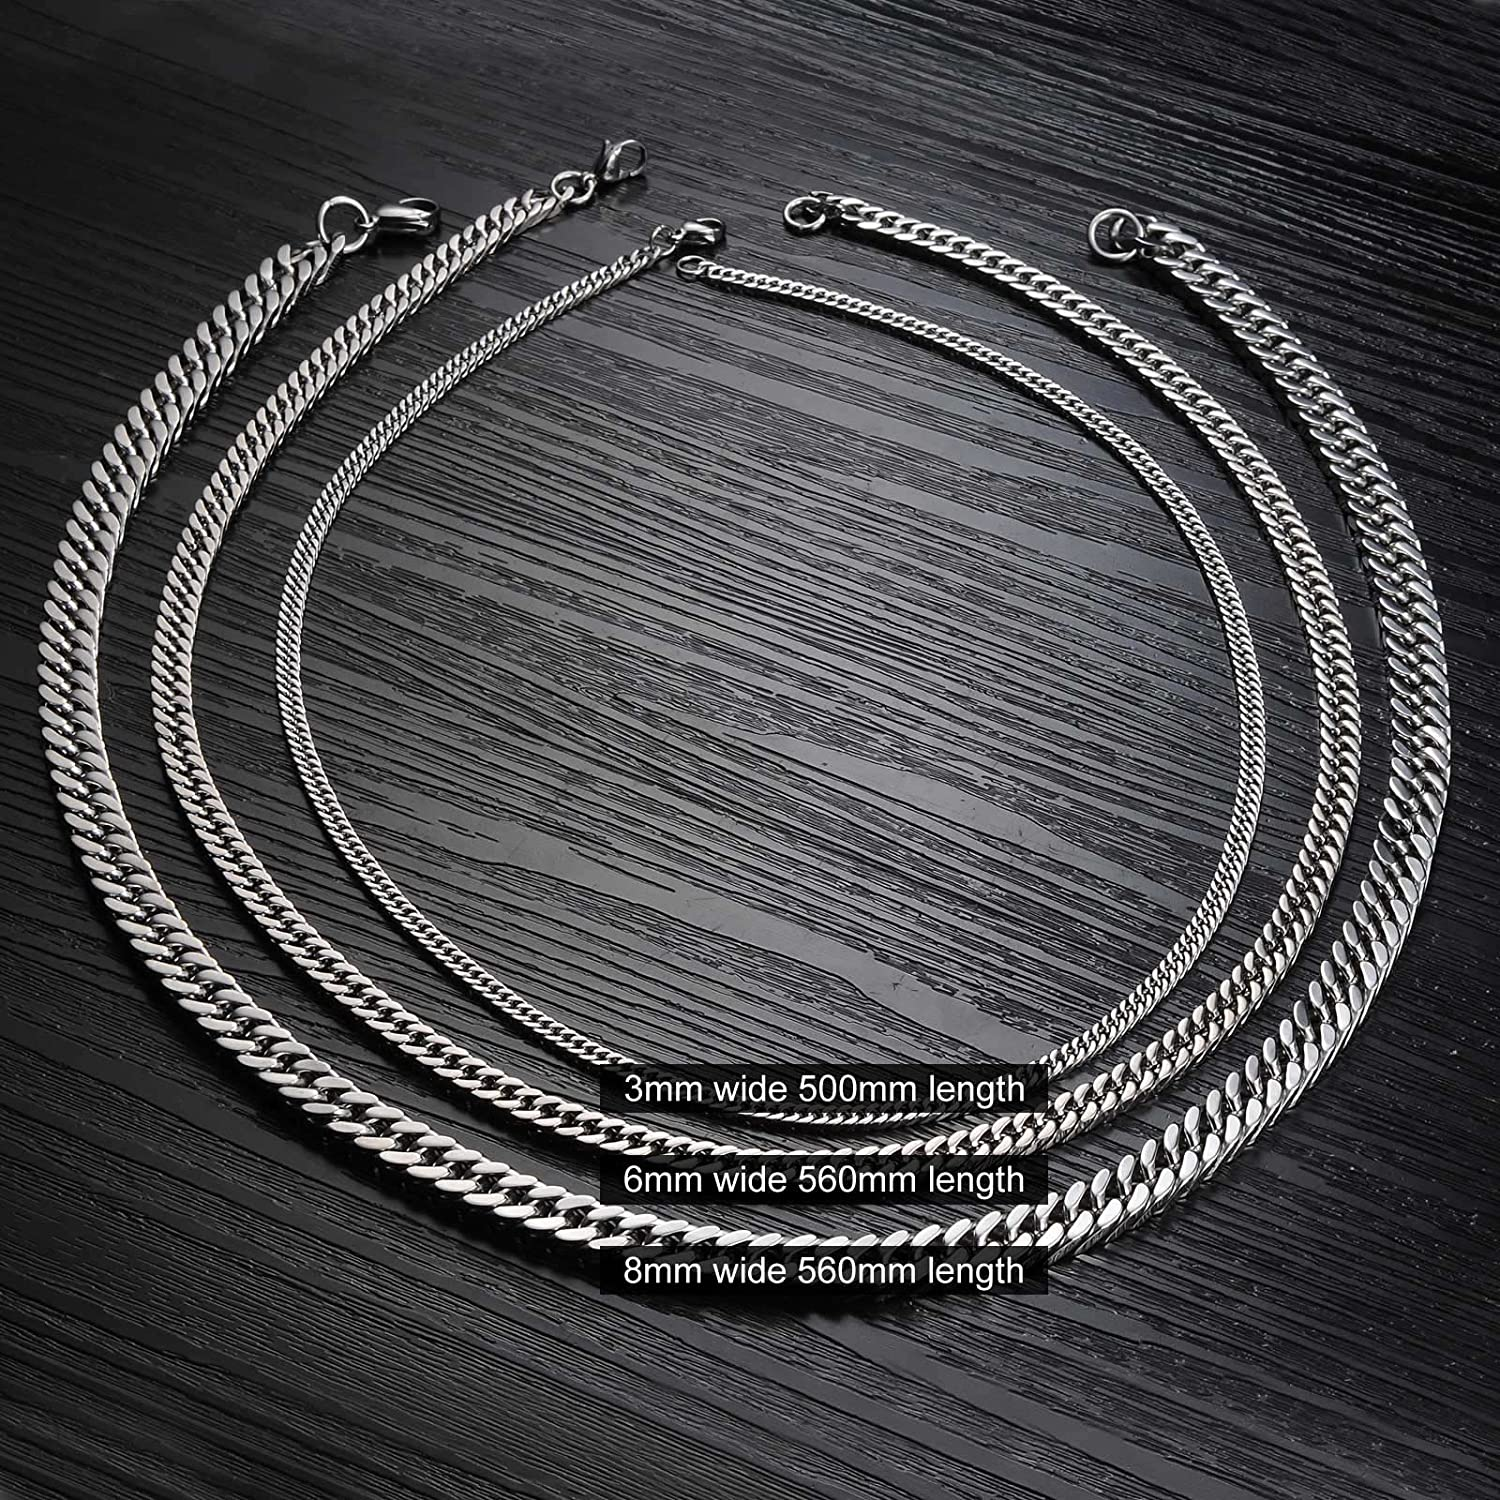 INSEA Fashion Stainless Steel Mens Womens Necklace Curb Chain 22.4 Inch for Men Women